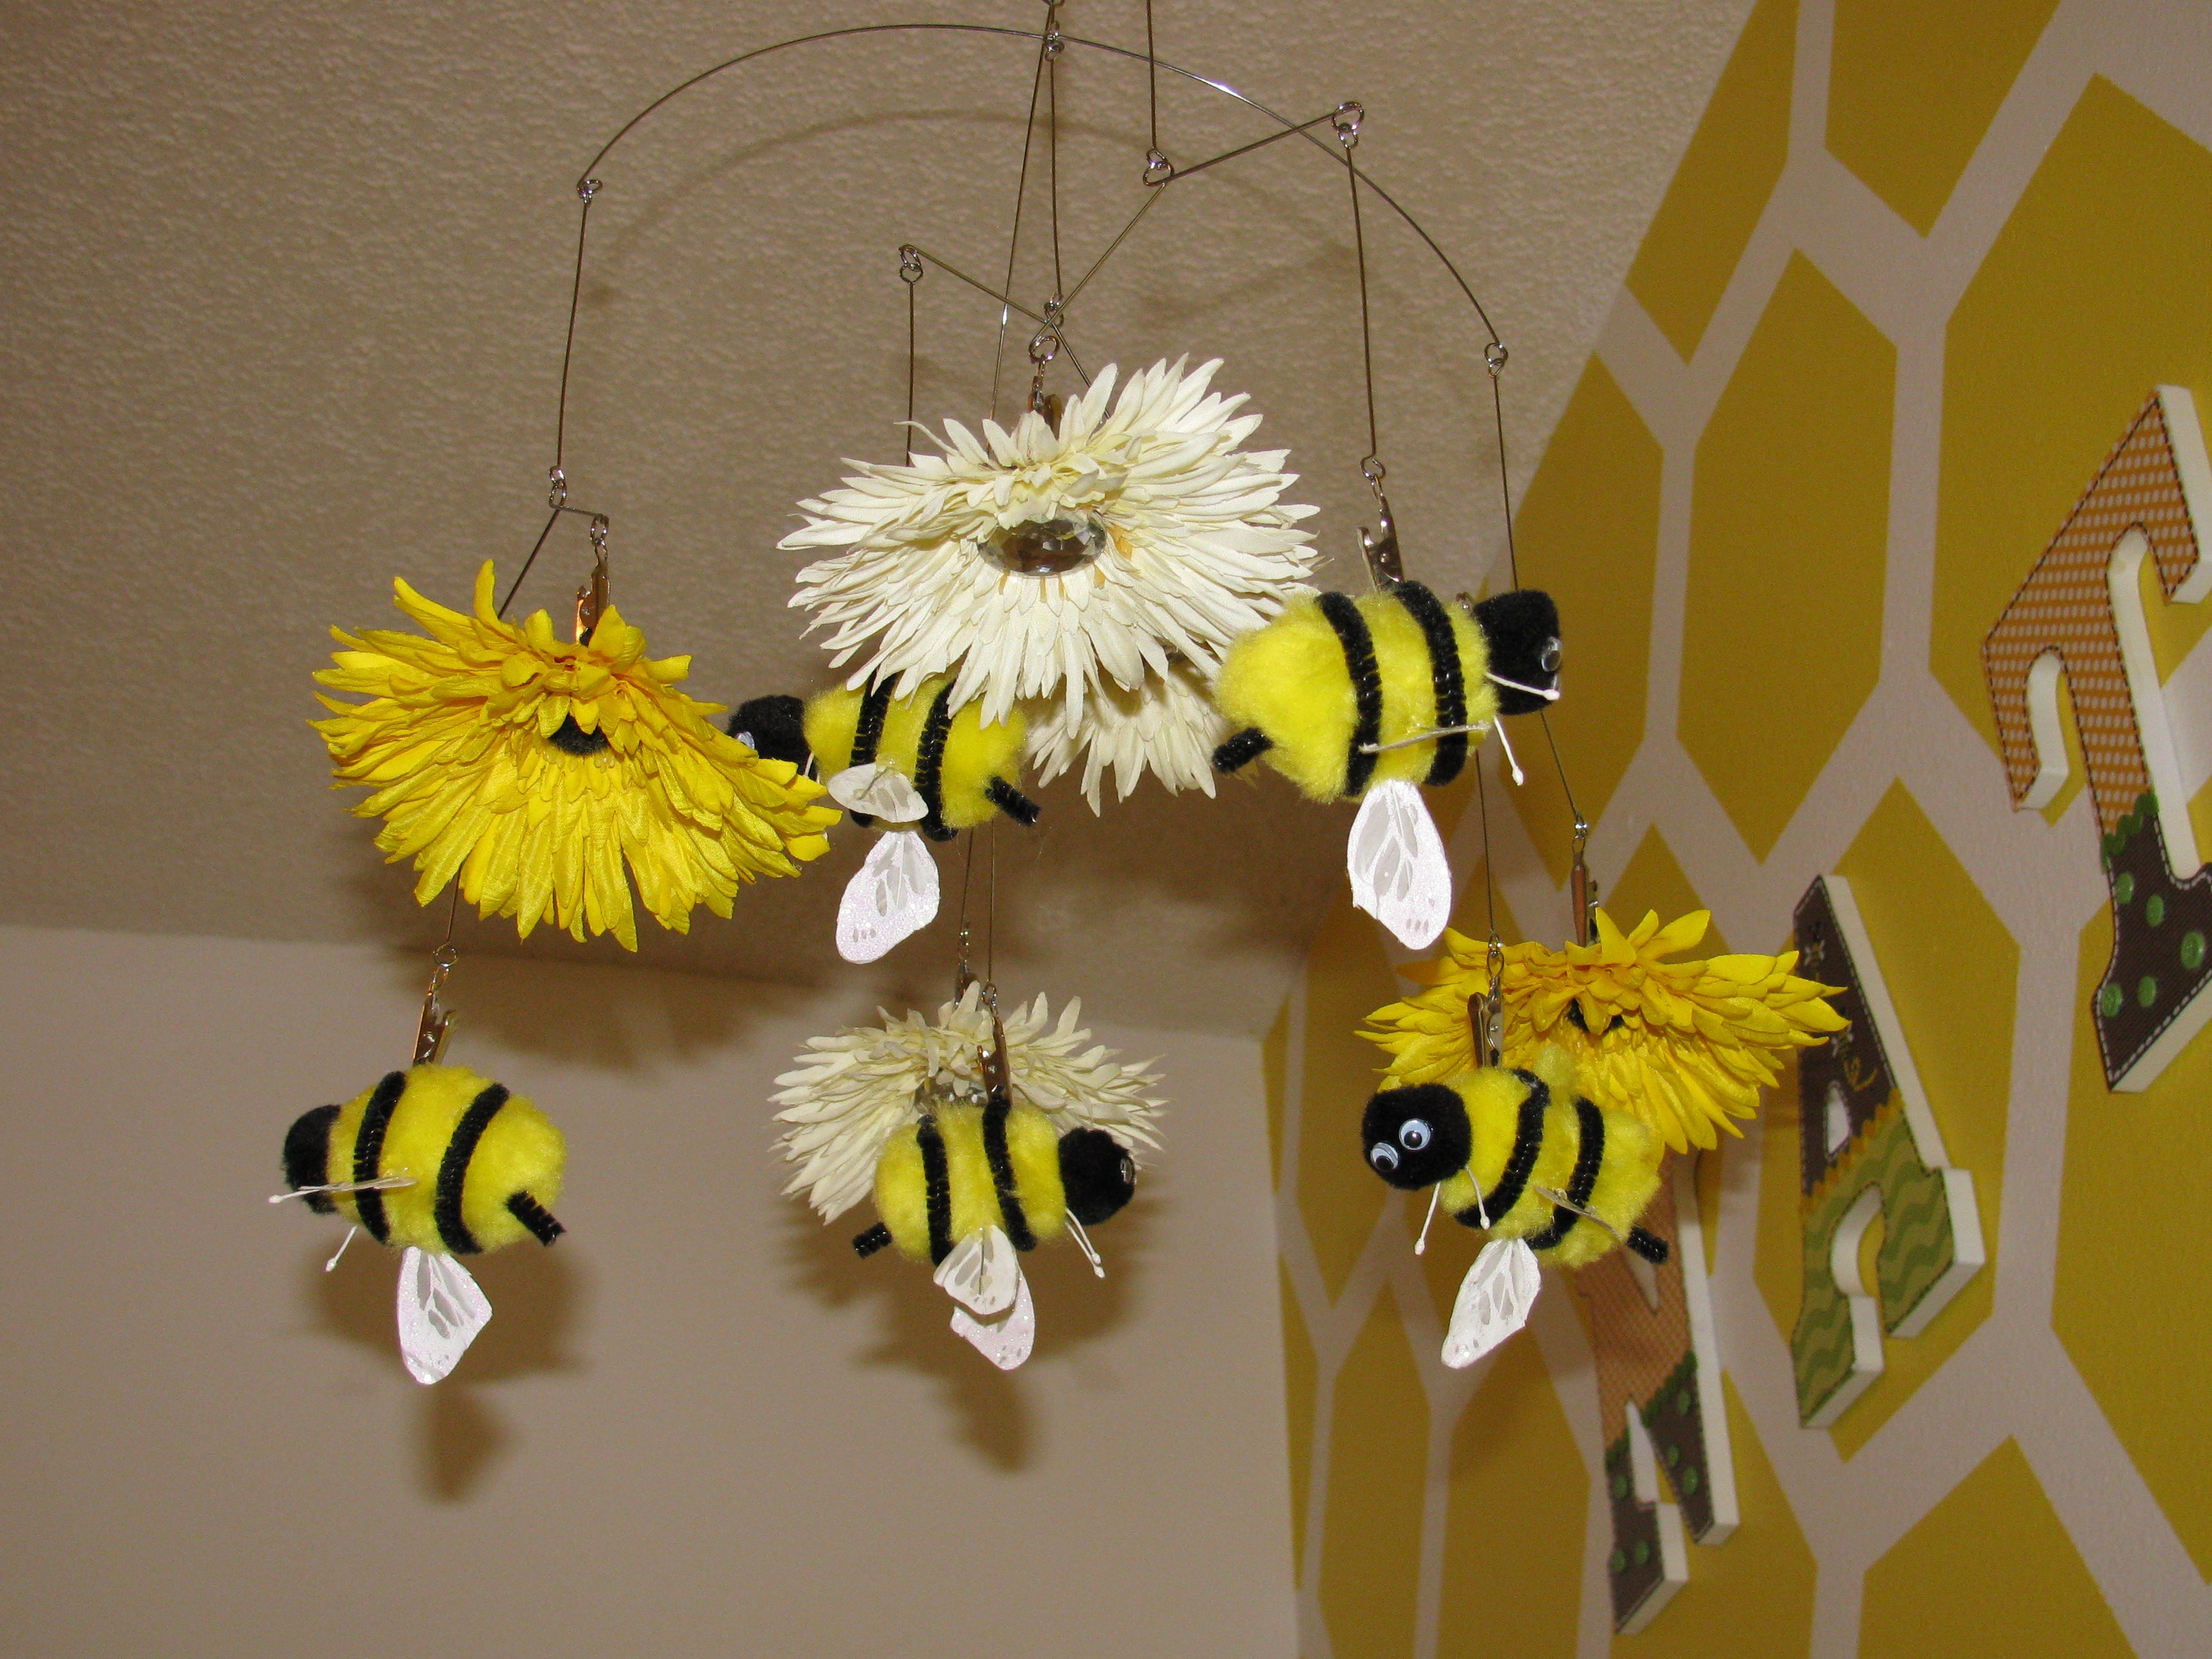 Bumble Bee Nursery - Bee Mobile made using silk flowers, a wire mobile purchased from Amazon, pom pom's, wings from butterflies, anntanes are flower wire stems, pipe cleaner, and google eyes. Spent less than $20 total.